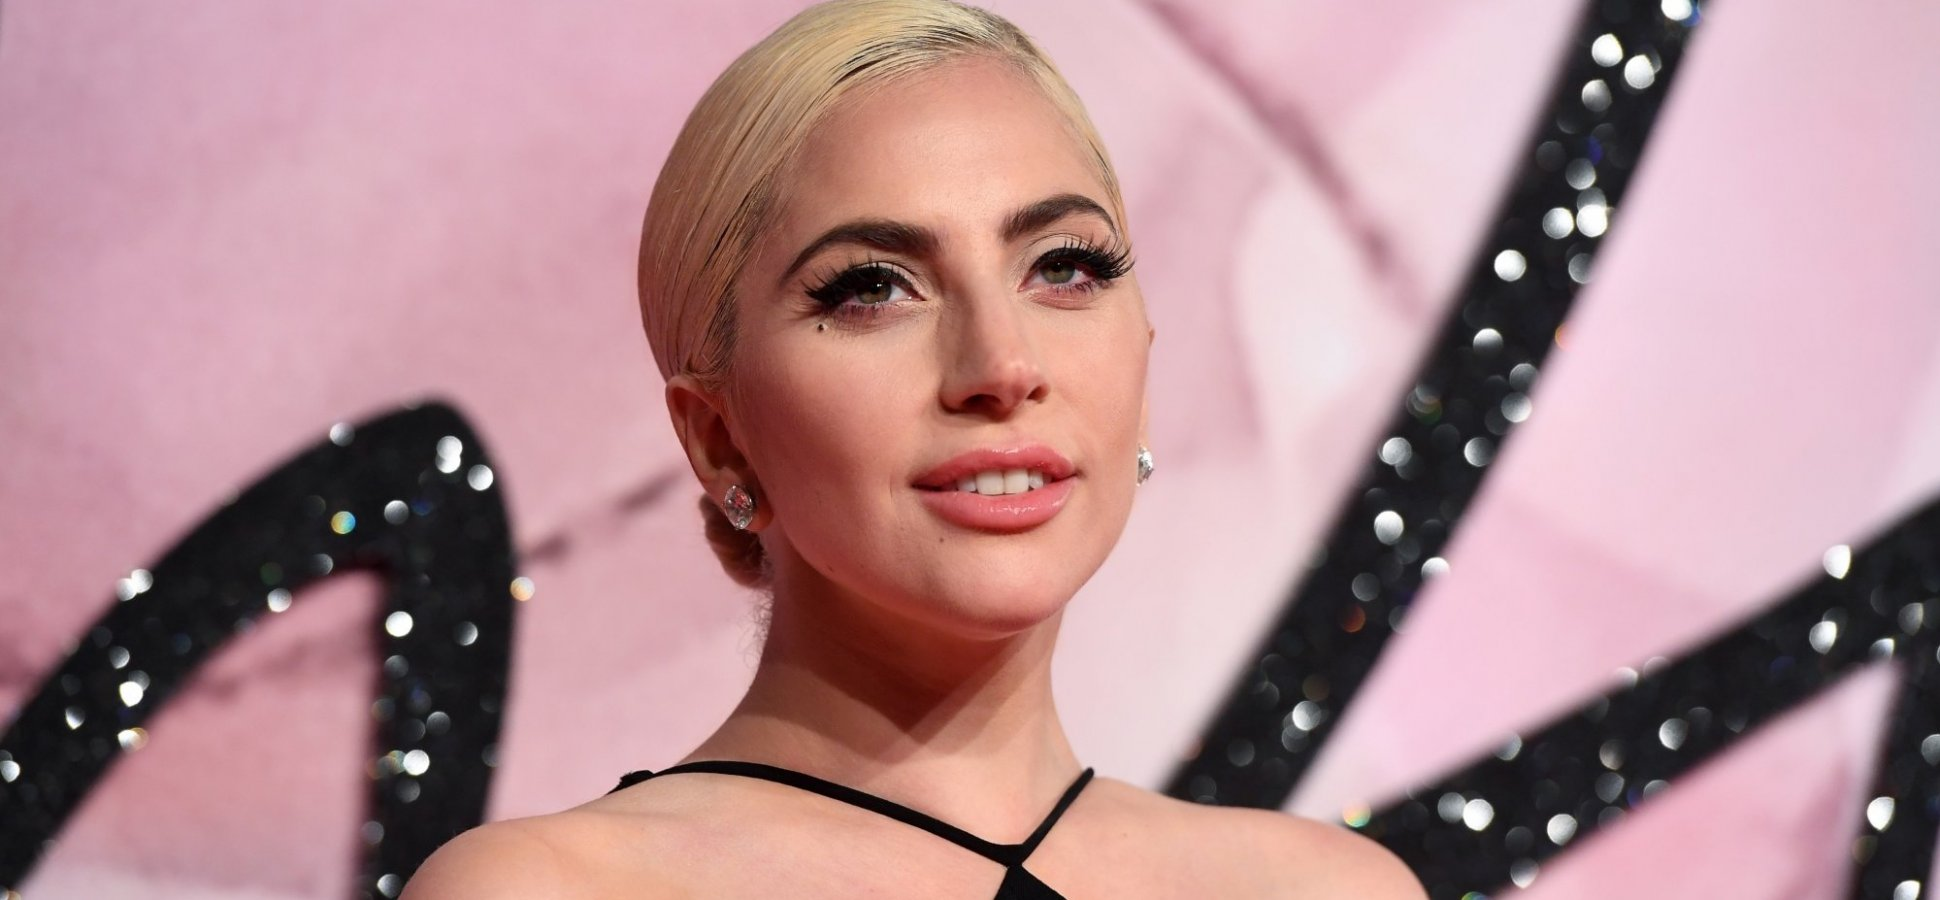 In 5 Words, Millionaire Lady Gaga Delivers Some Truly Remarkable Life Advice